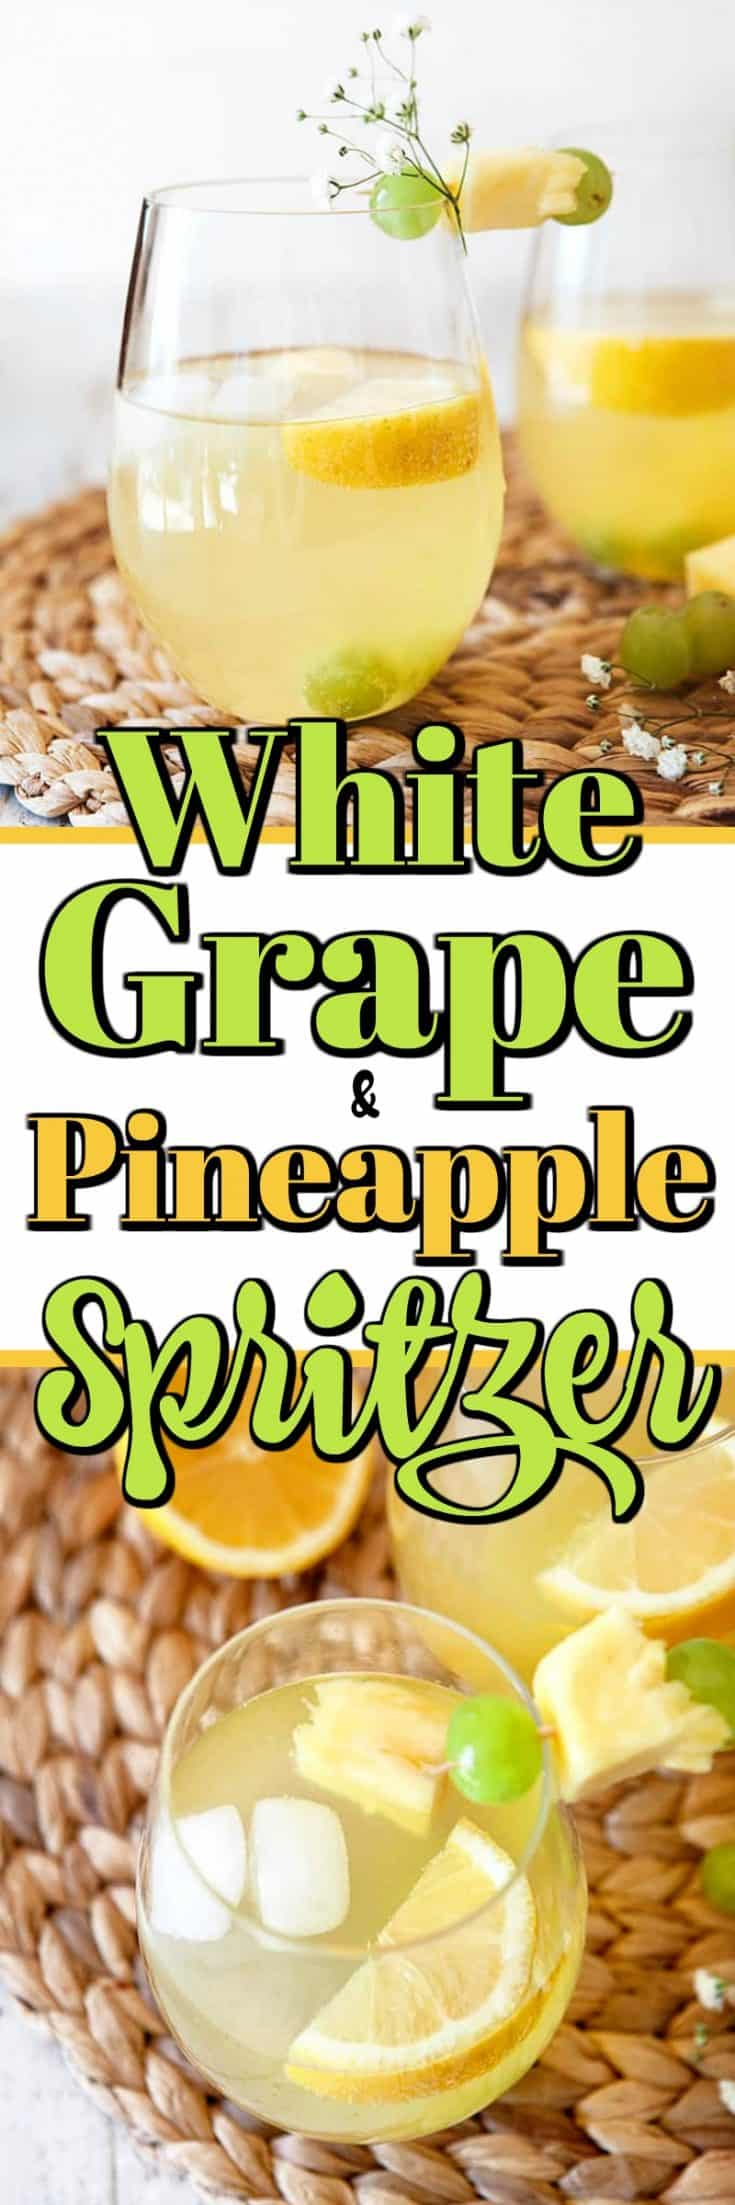 This White Grape and Pineapple Spritzer is a deliciously simple mocktail drink for adults. Perfect for spring and summer entertaining! #mocktail #spritzer